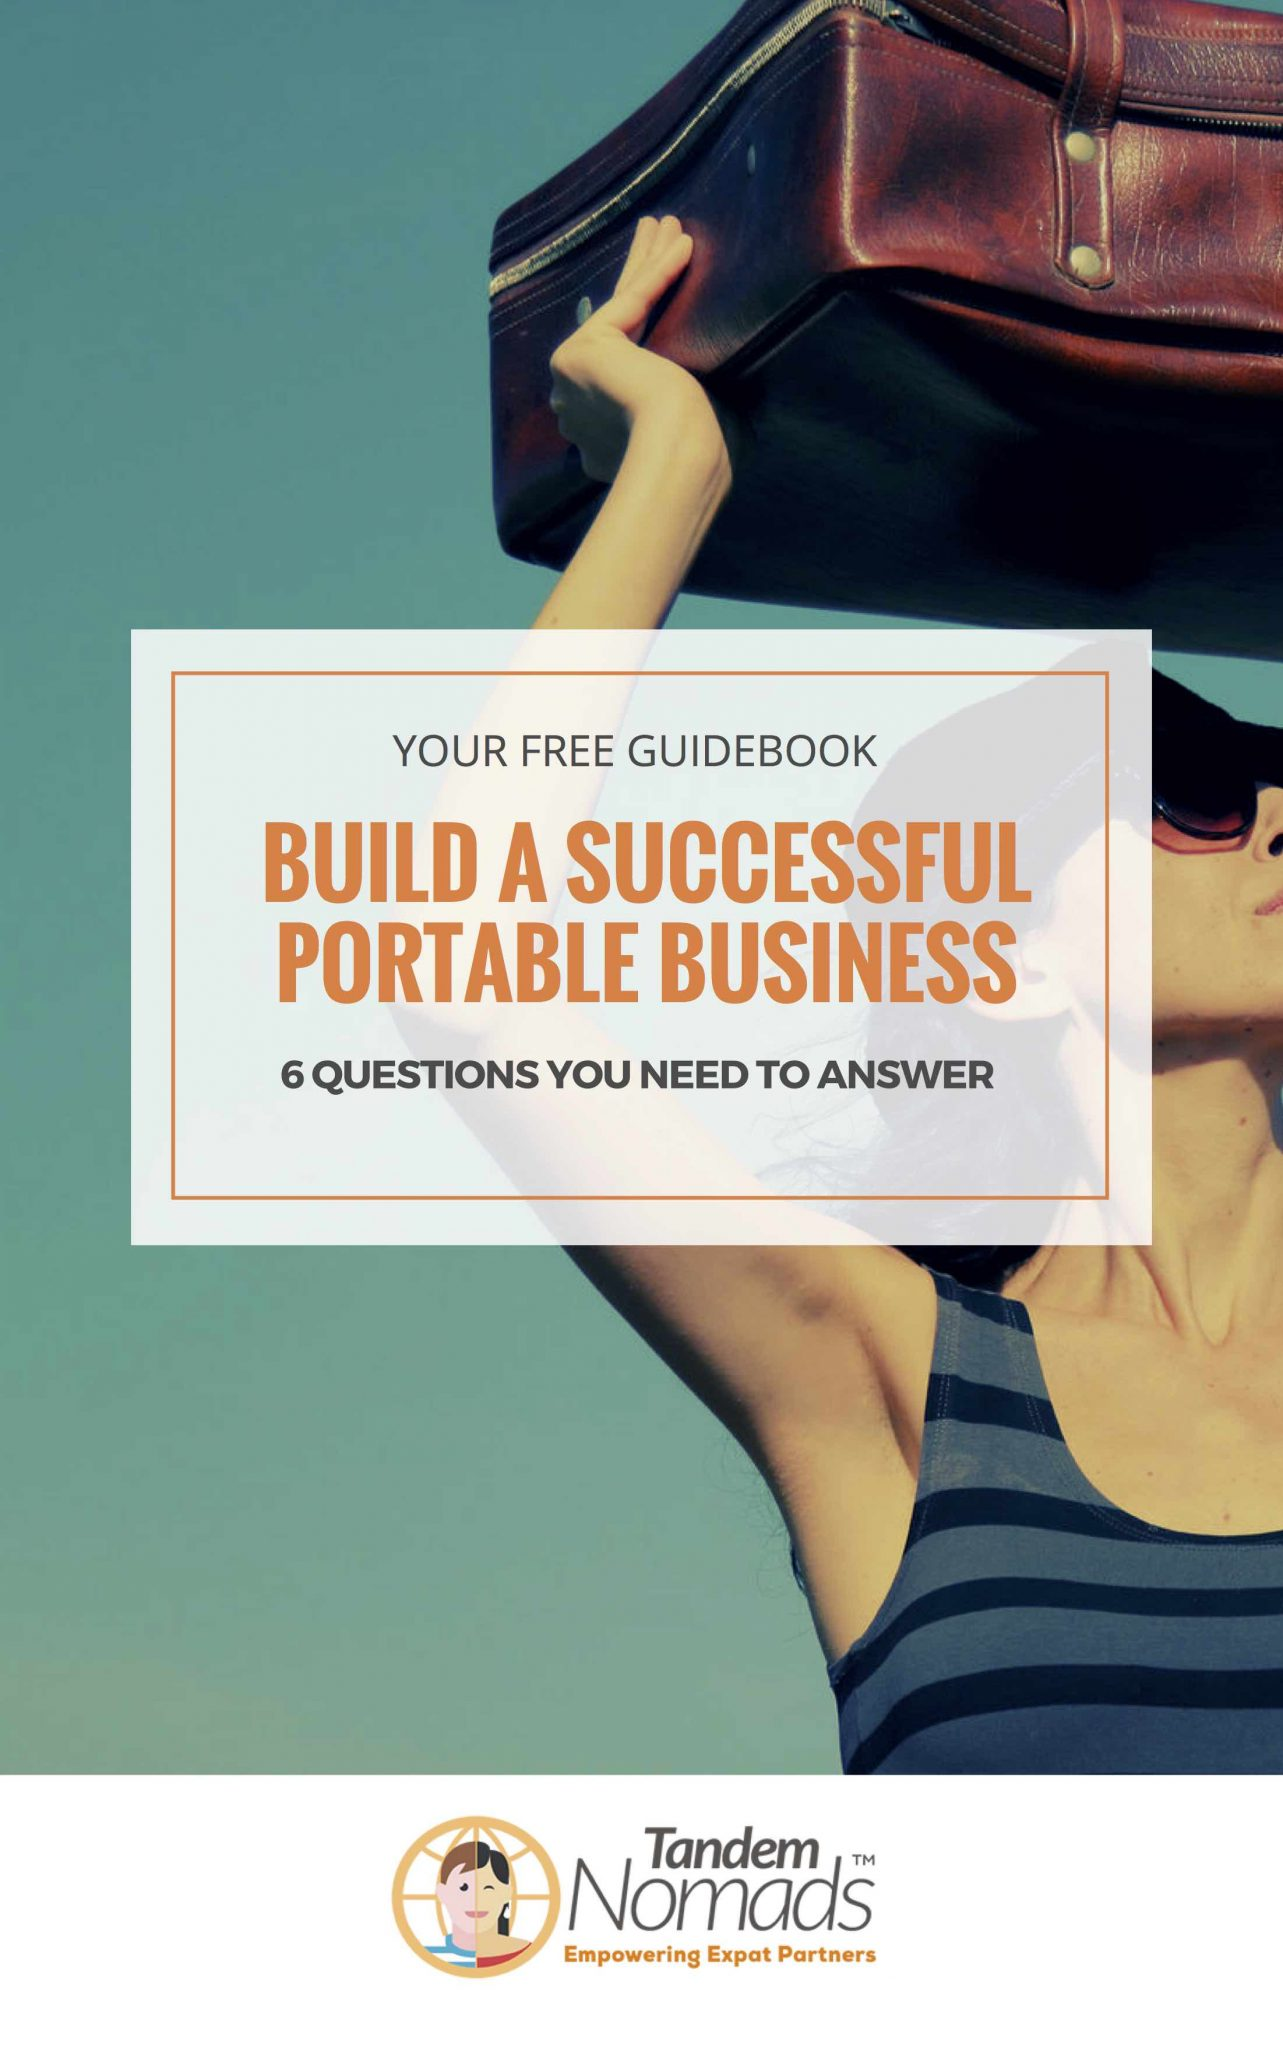 How to build a portable business